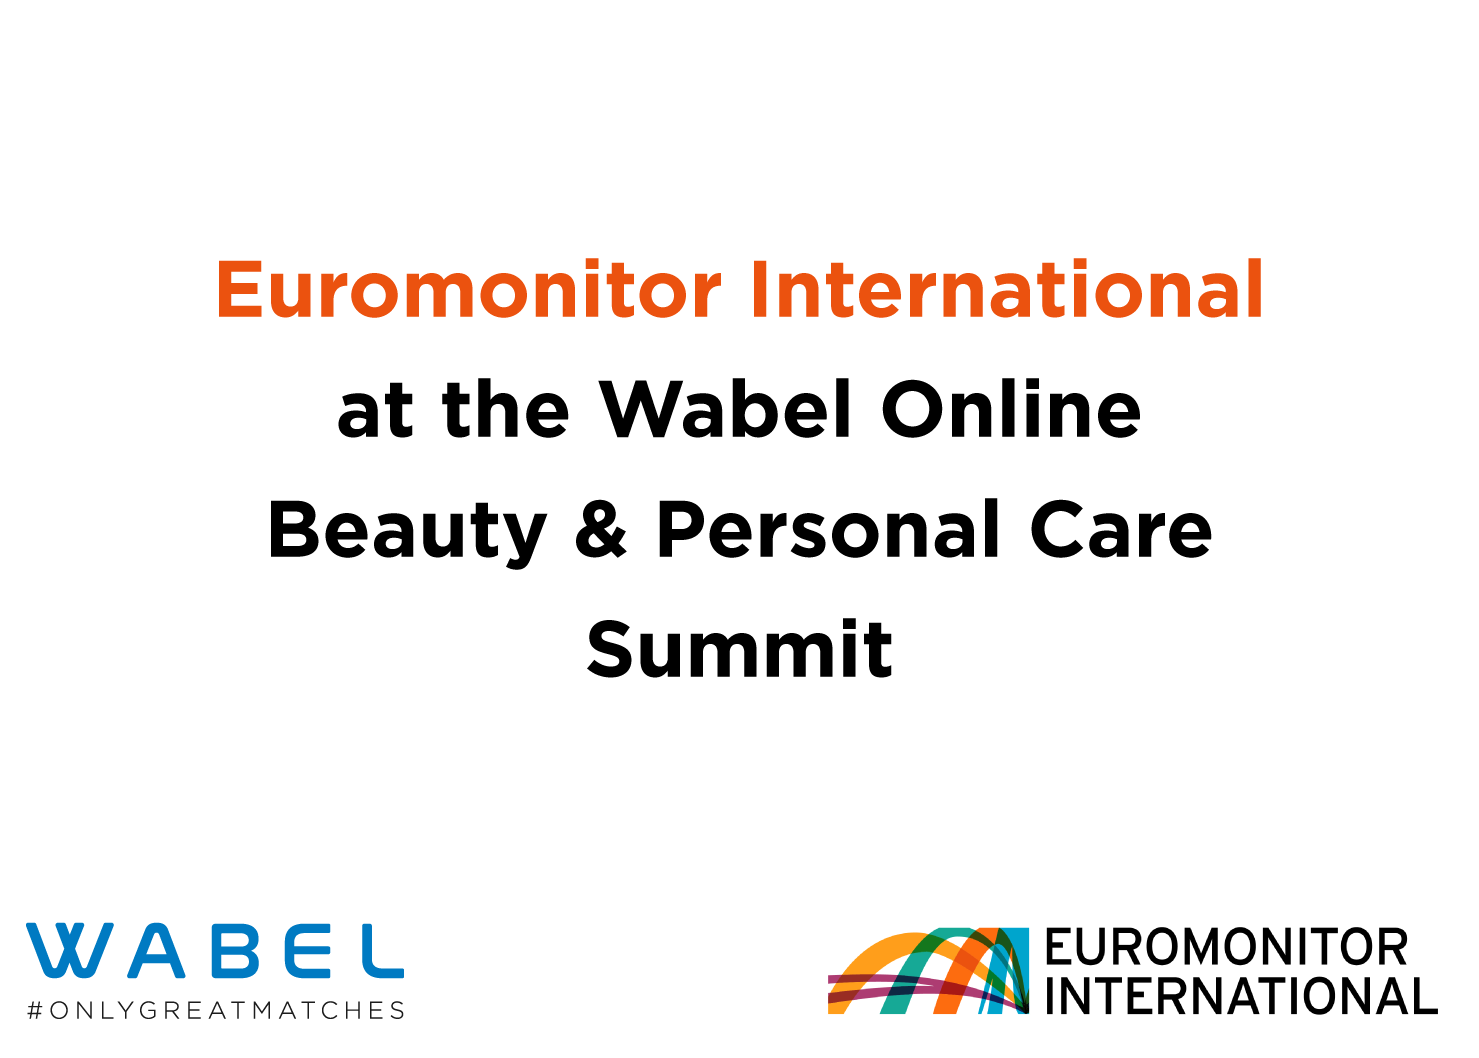 EUROMONITOR at the Wabel Online Beauty & Personal Care Summit.